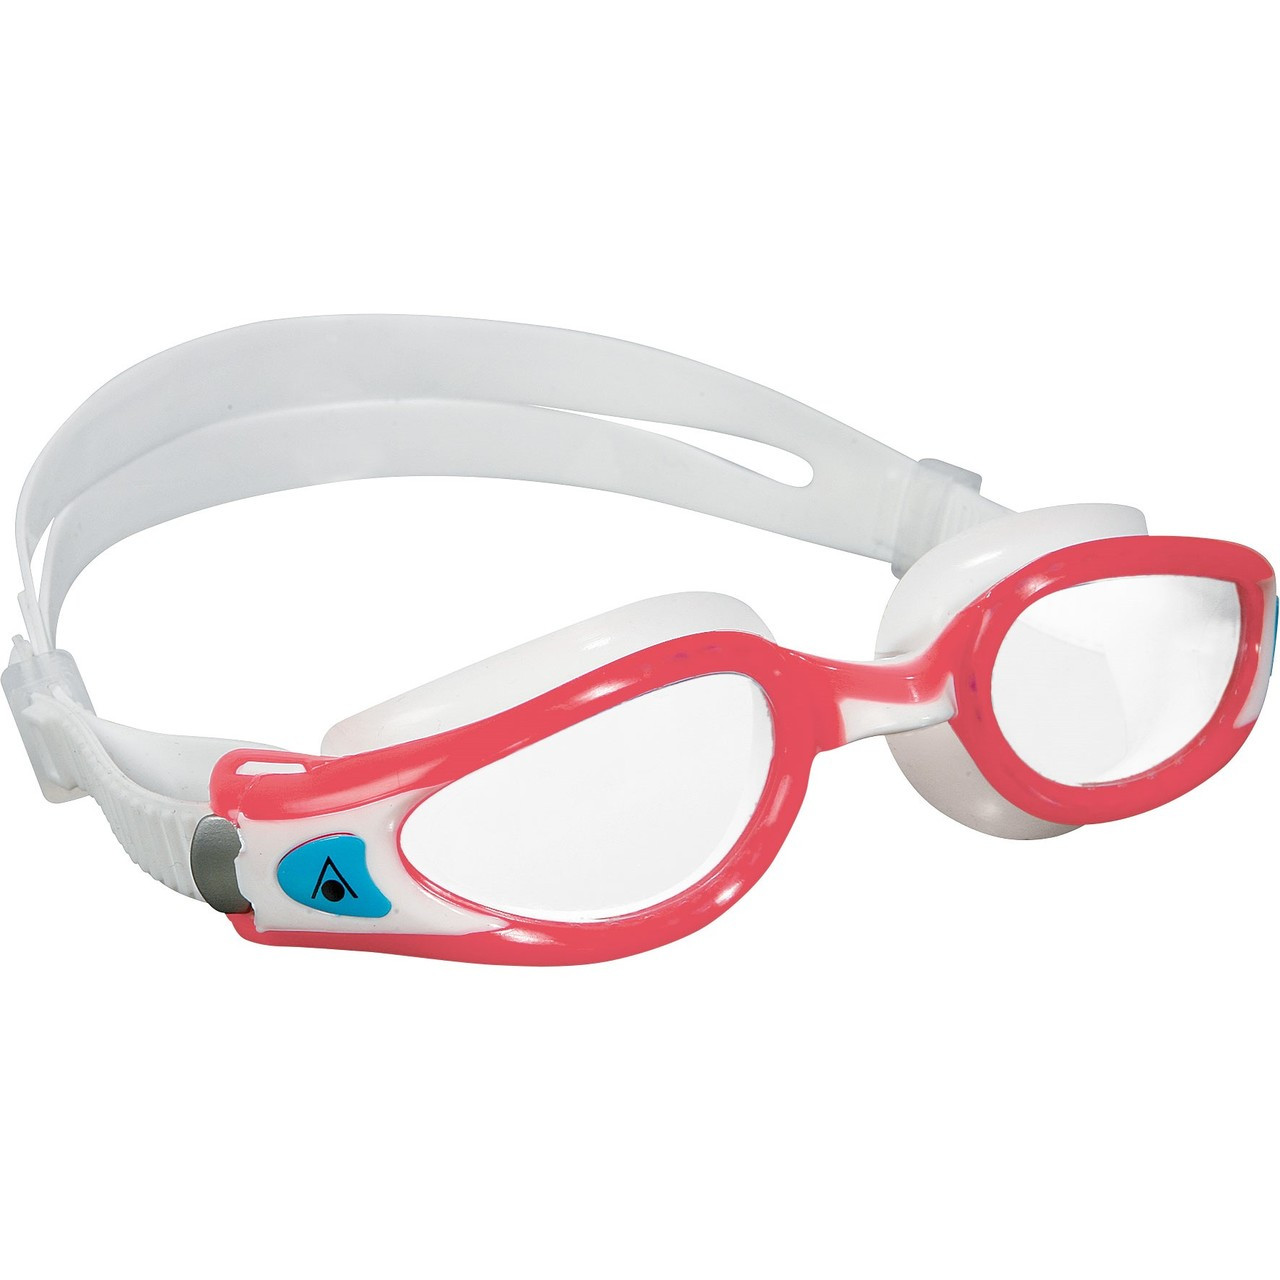 Aqua Sphere Kaiman EXO Lady Goggle with Clear Lens - 2017 price